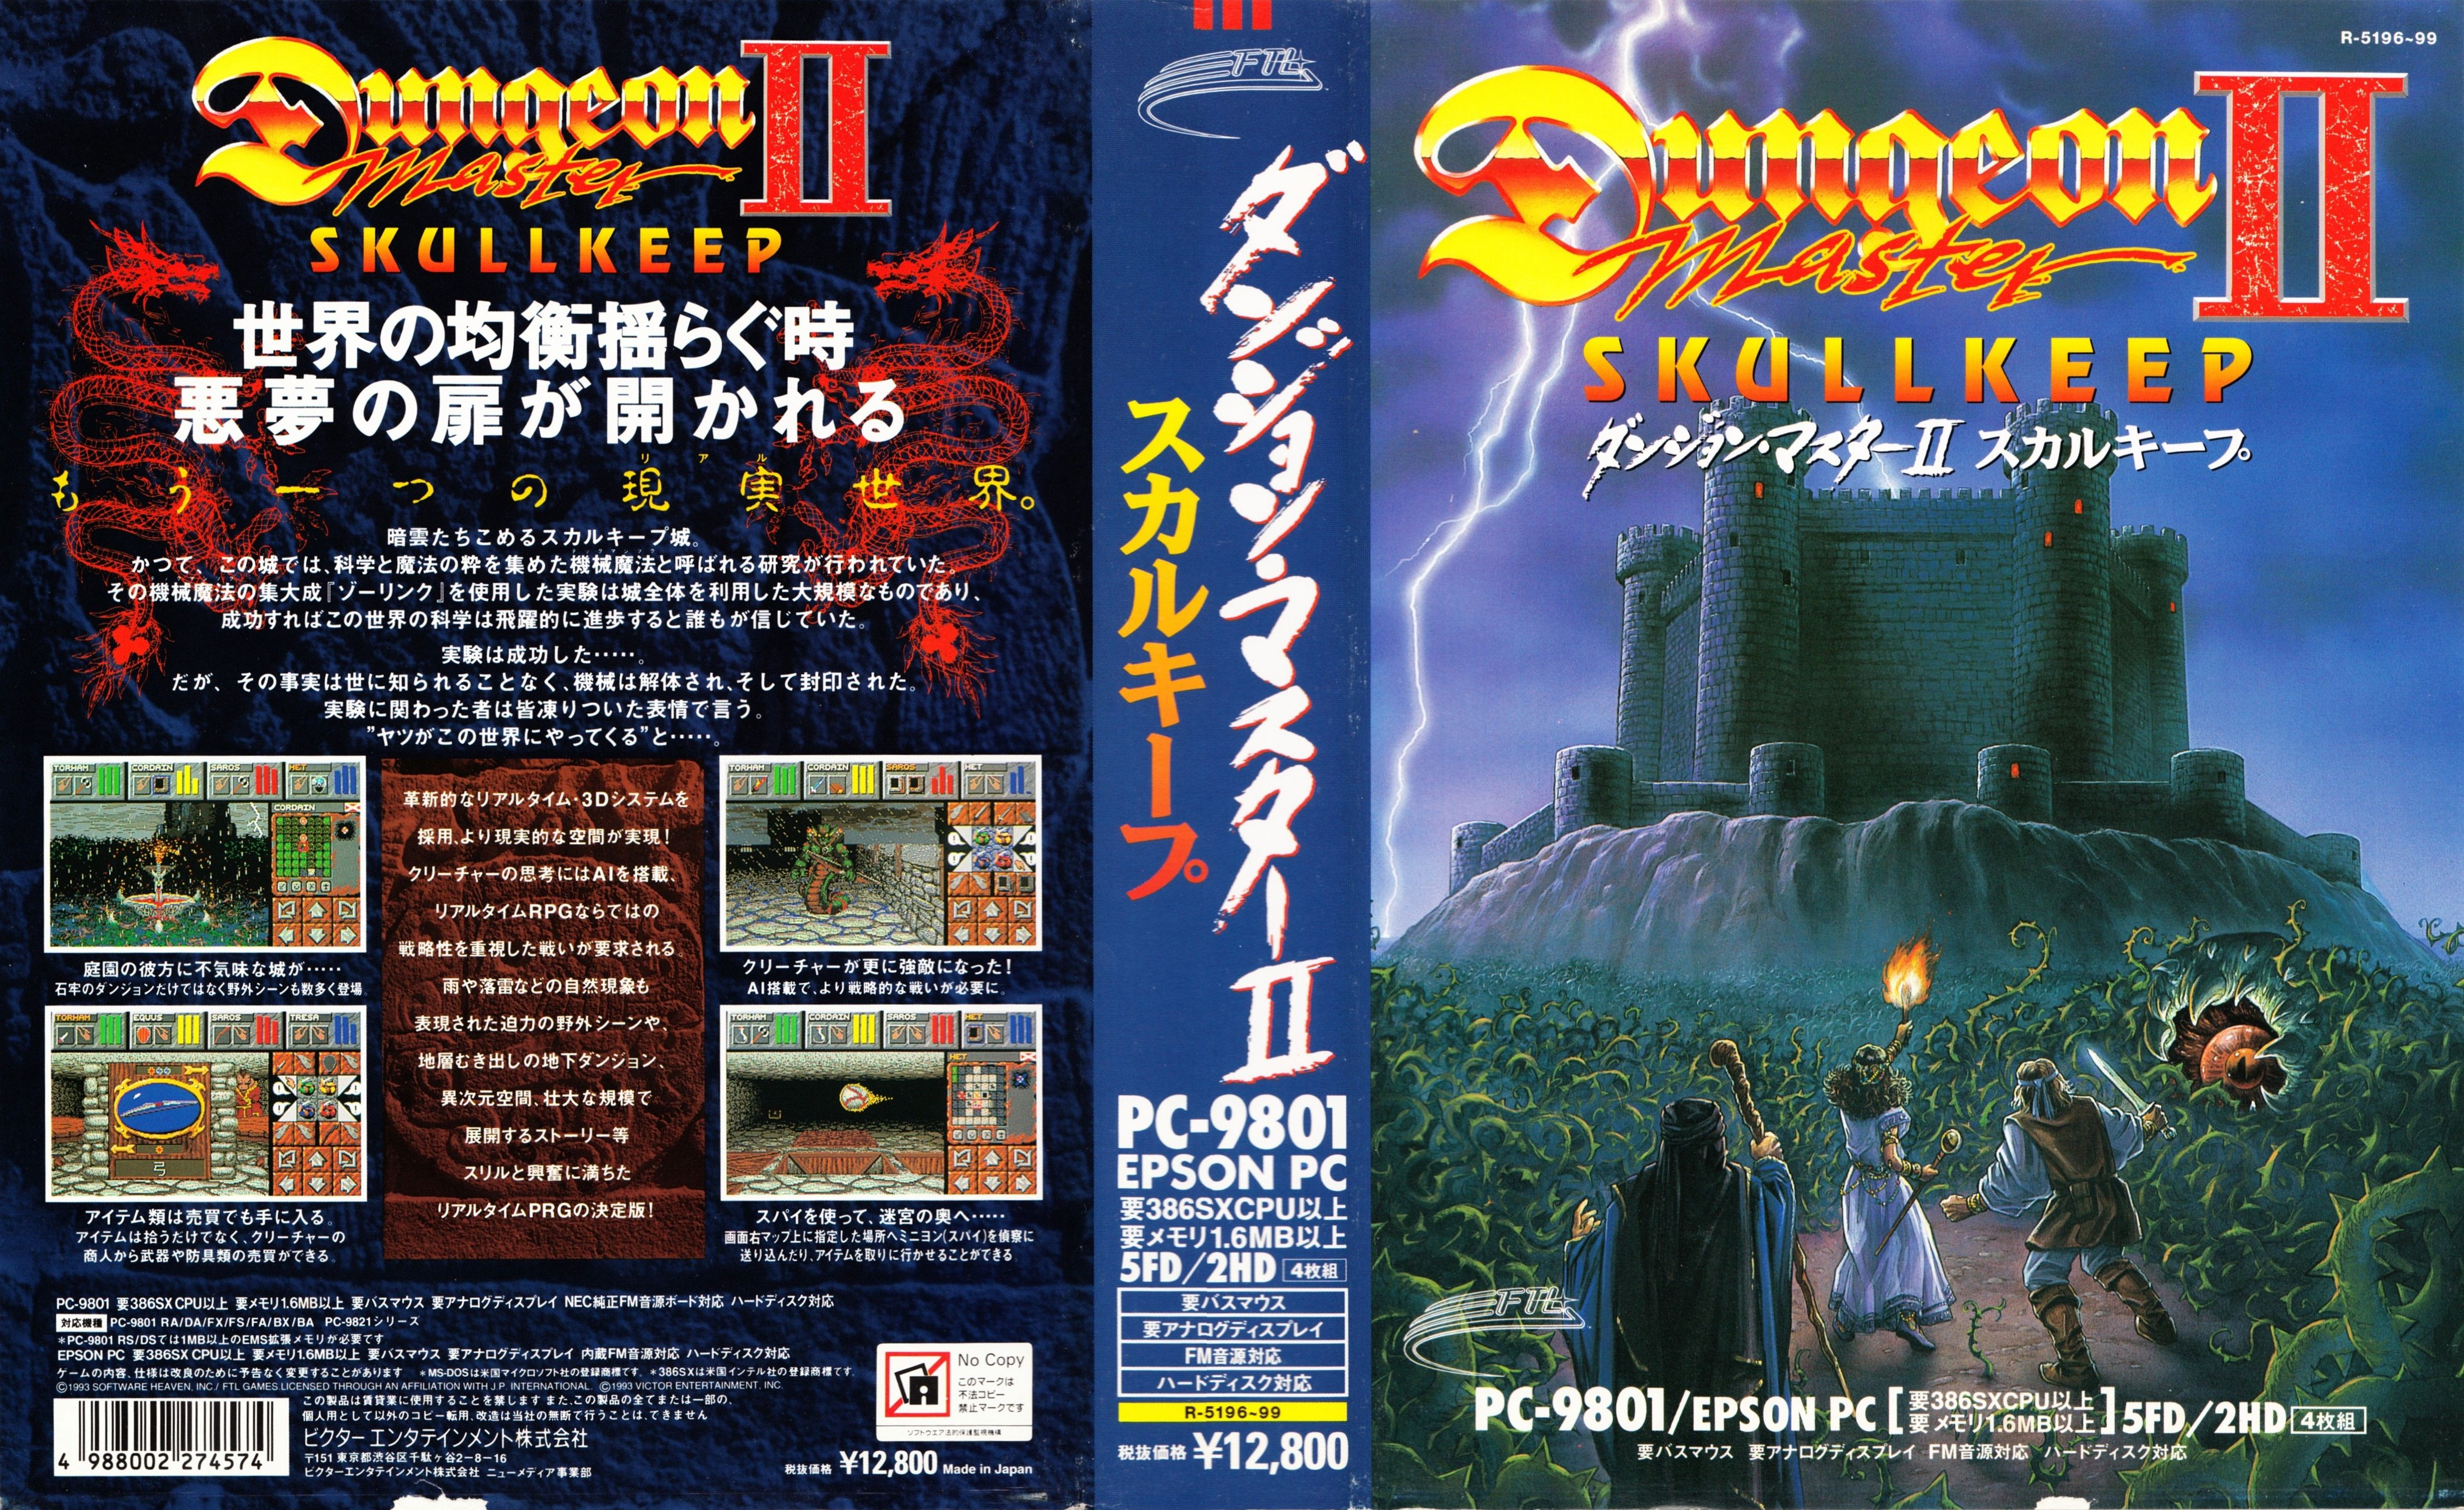 Game - Dungeon Master II - JP - PC-9801 - 5.25-inch - Cover - Front - Scan